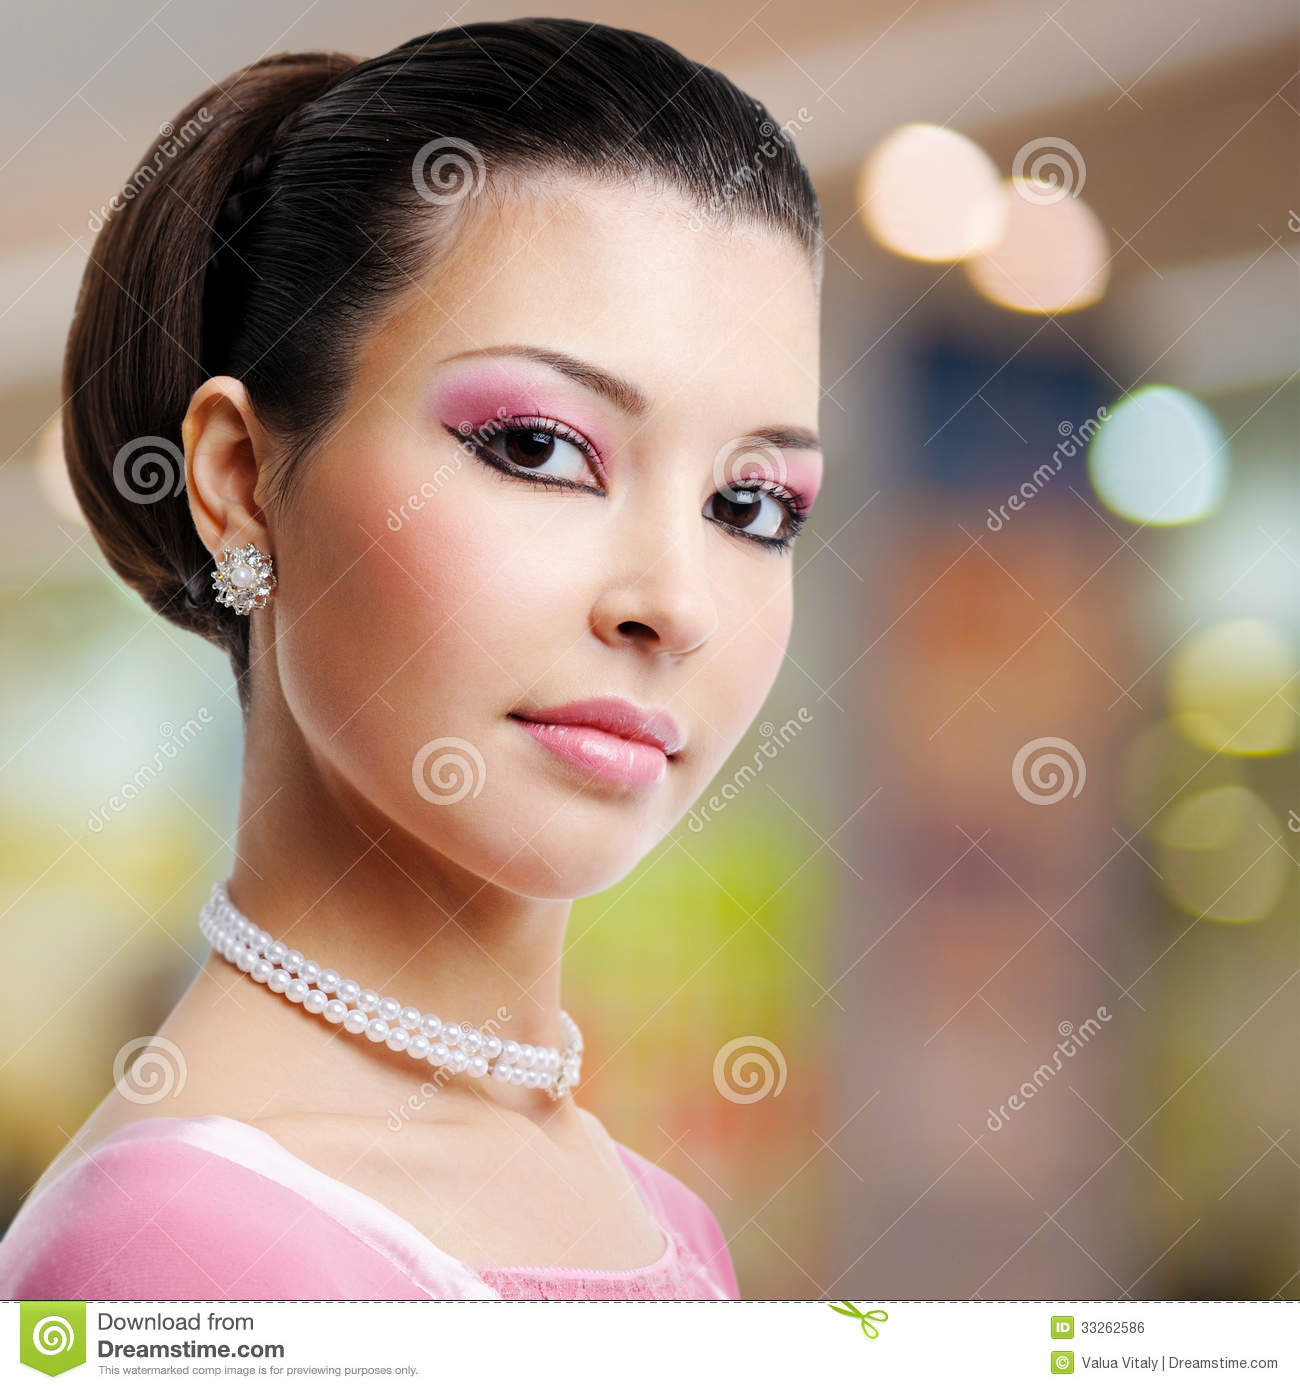 Face Of Beautiful Woman With Fashion Hairstyle And Glamour Makeu Royalty Free Stock Image ...